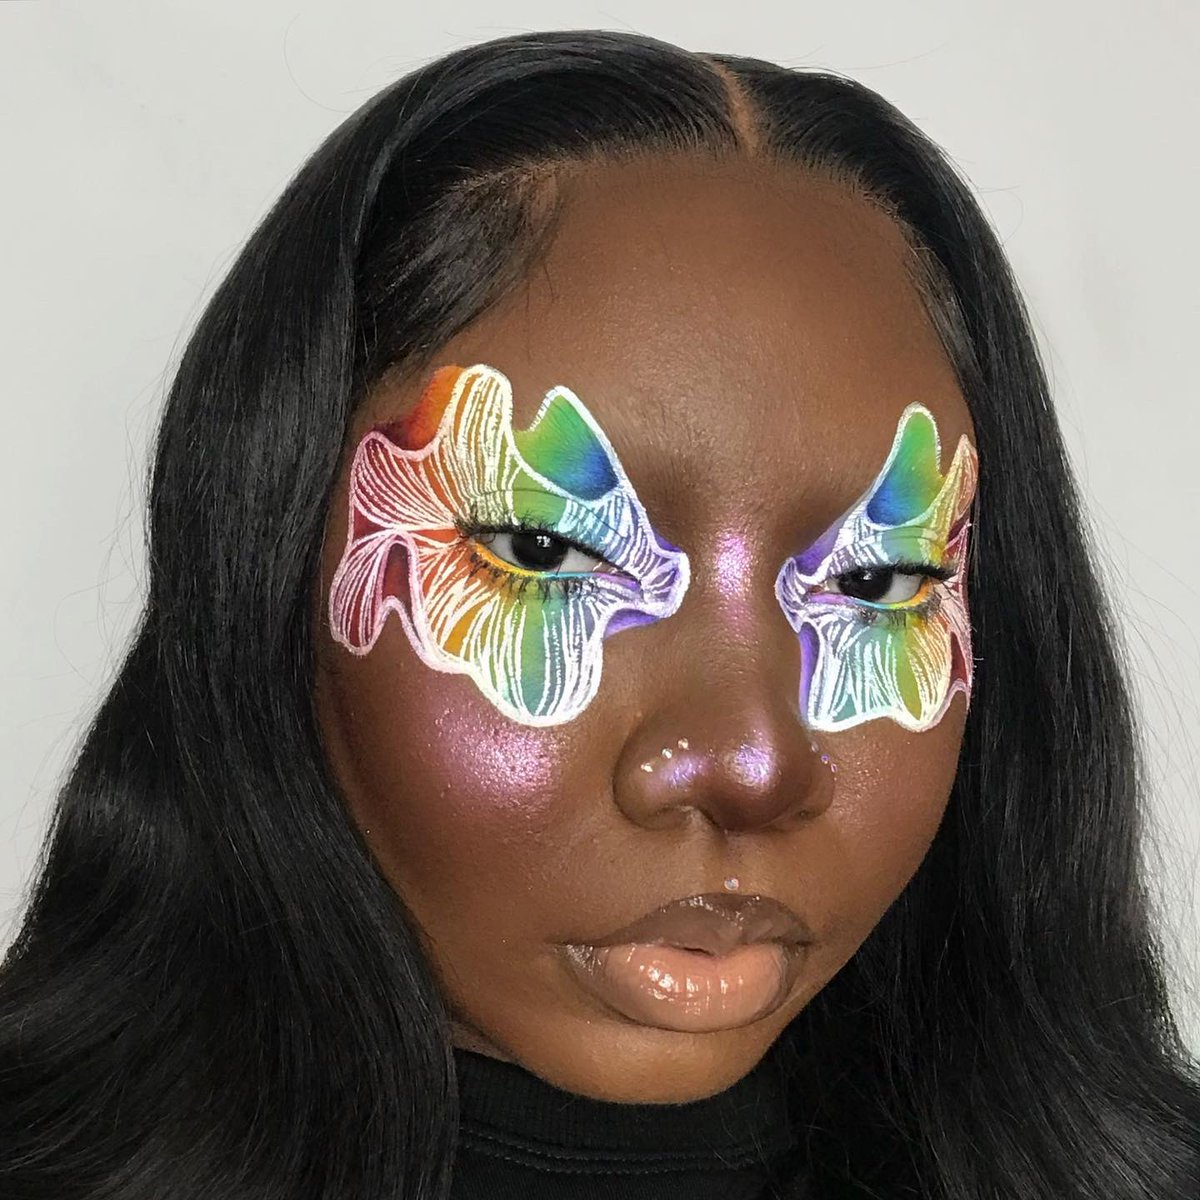 ✨☁️🌈🧫MET•A•MOR•PHO•SIS🌈🧫☁️✨ details: https://t.co/zXxGyQNOwt  shape ib: @beautybekky https://t.co/AzBGqlGKoi